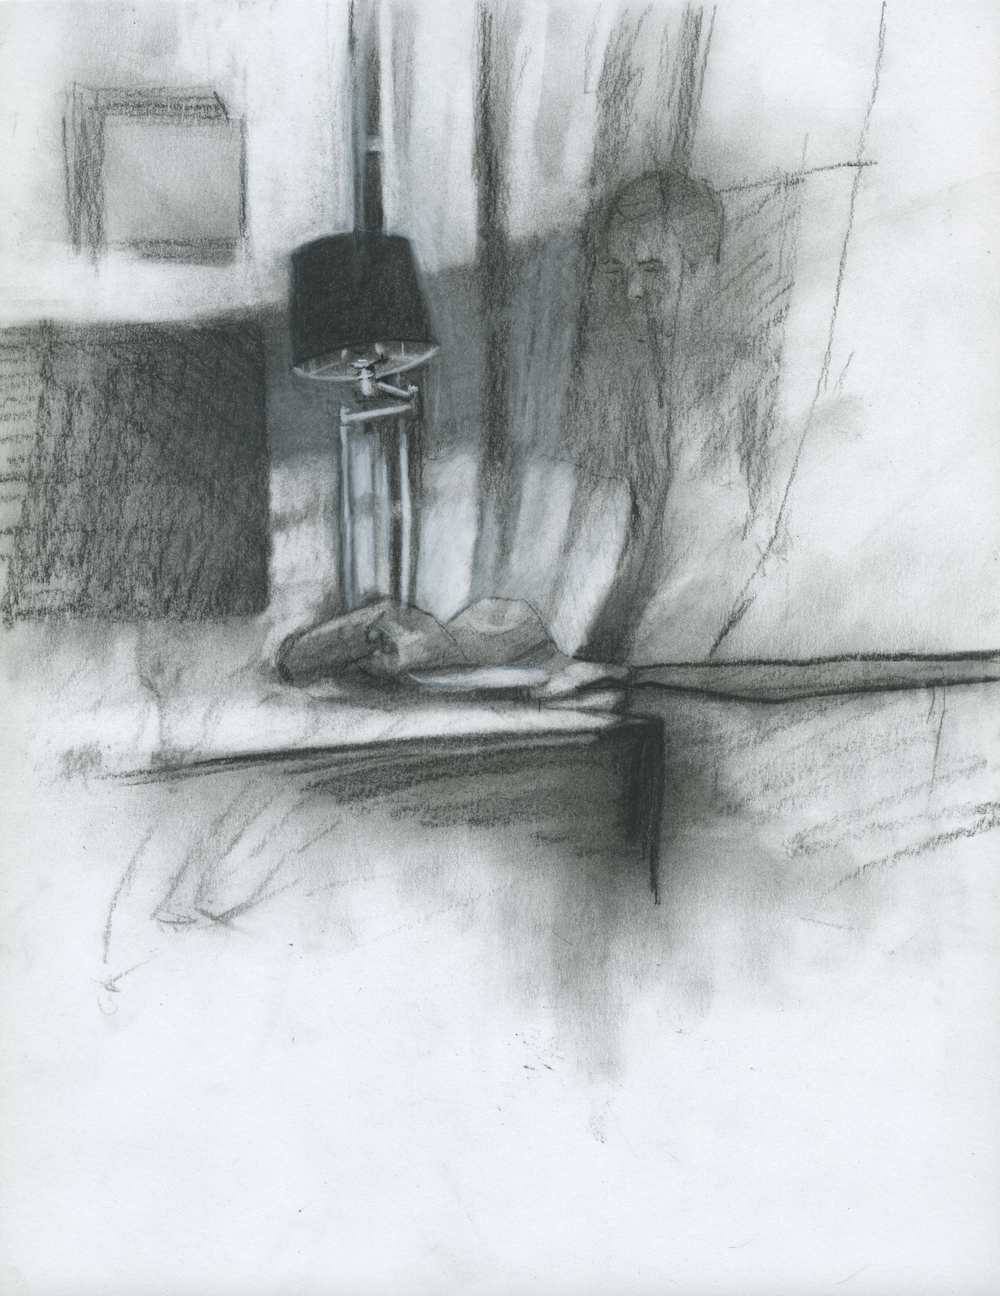 "On All Night, charcoal on paper, 11"" x 8.5"", 2014"